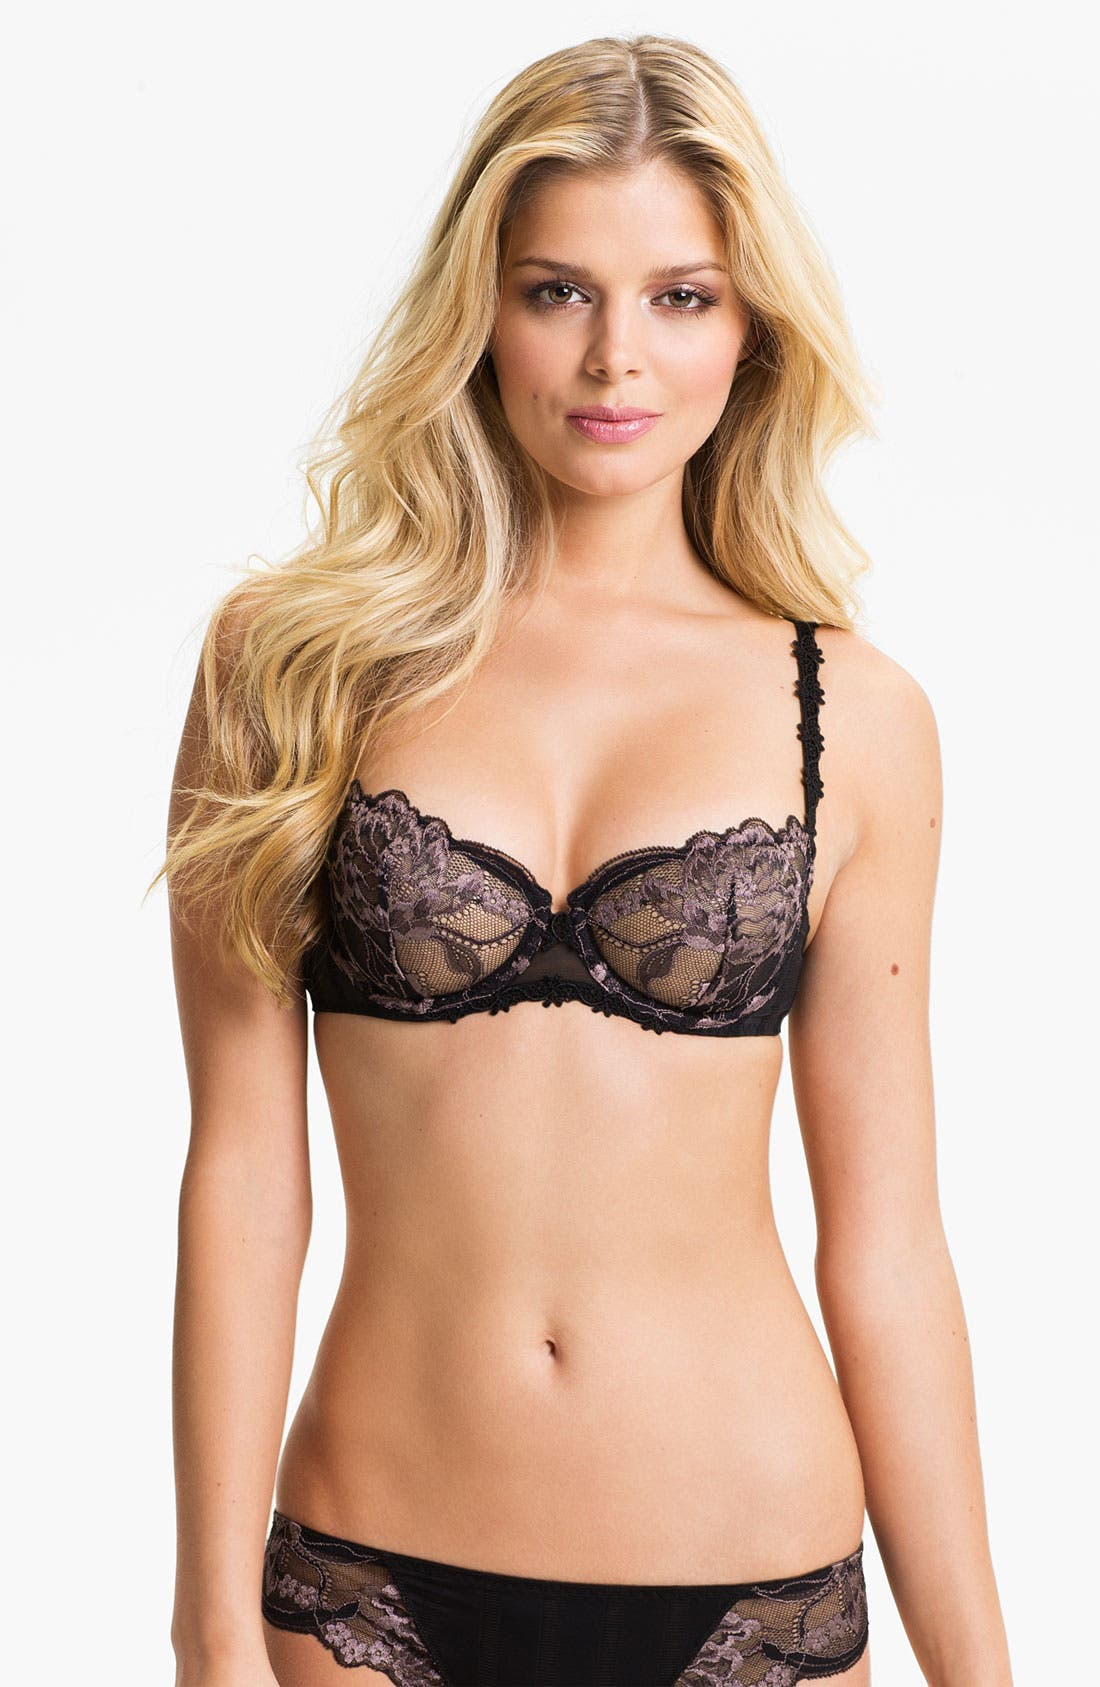 'Amour' Underwire Demi Bra,                             Main thumbnail 3, color,